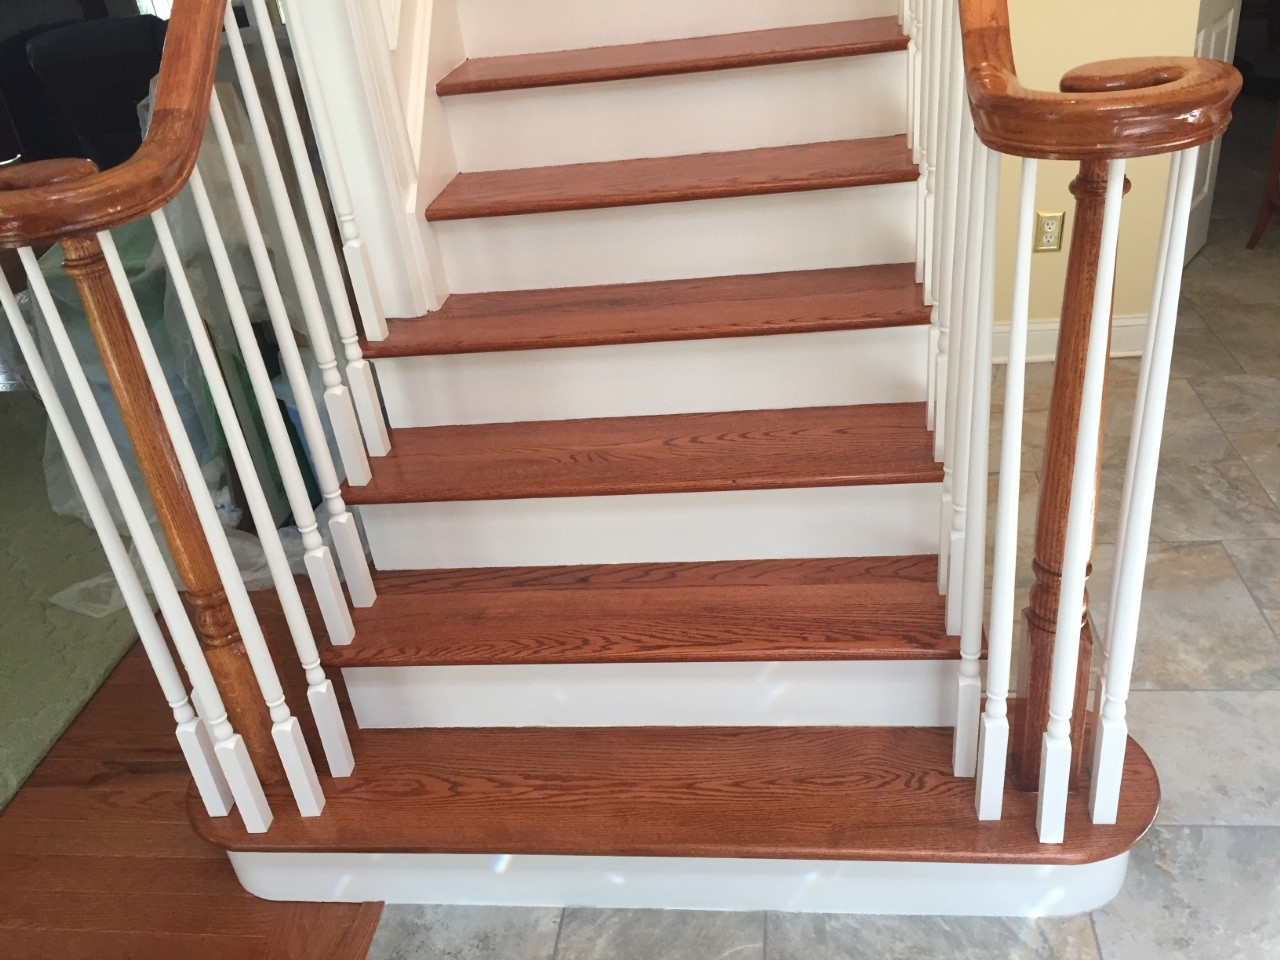 Stairs Snanding And Refinishing Installing New Steps Wood | Installing Wood Floors On Stairs | Stair Tread | Stair Nosing | Carpeted Stairs | Vinyl Plank | Carpet